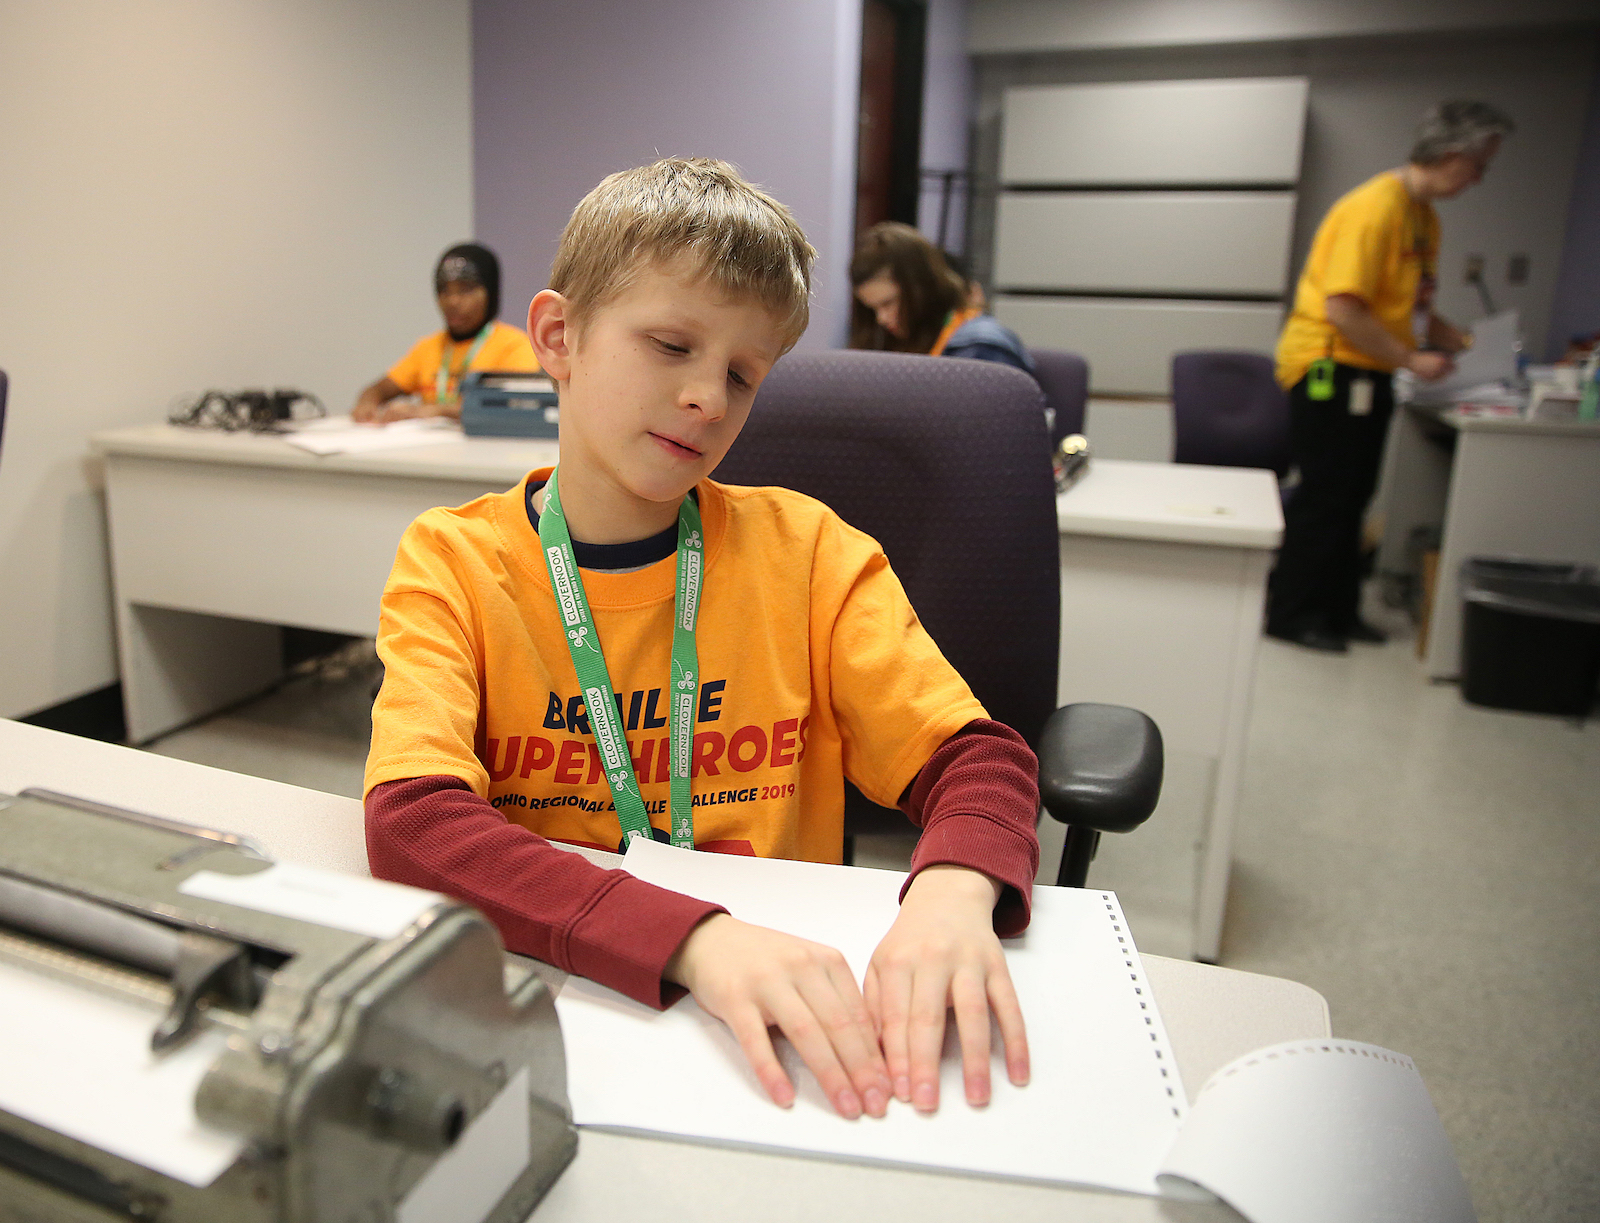 Philip Sotak participates in the Ohio Regional Braille Challenge, working his way through a proofreading test.